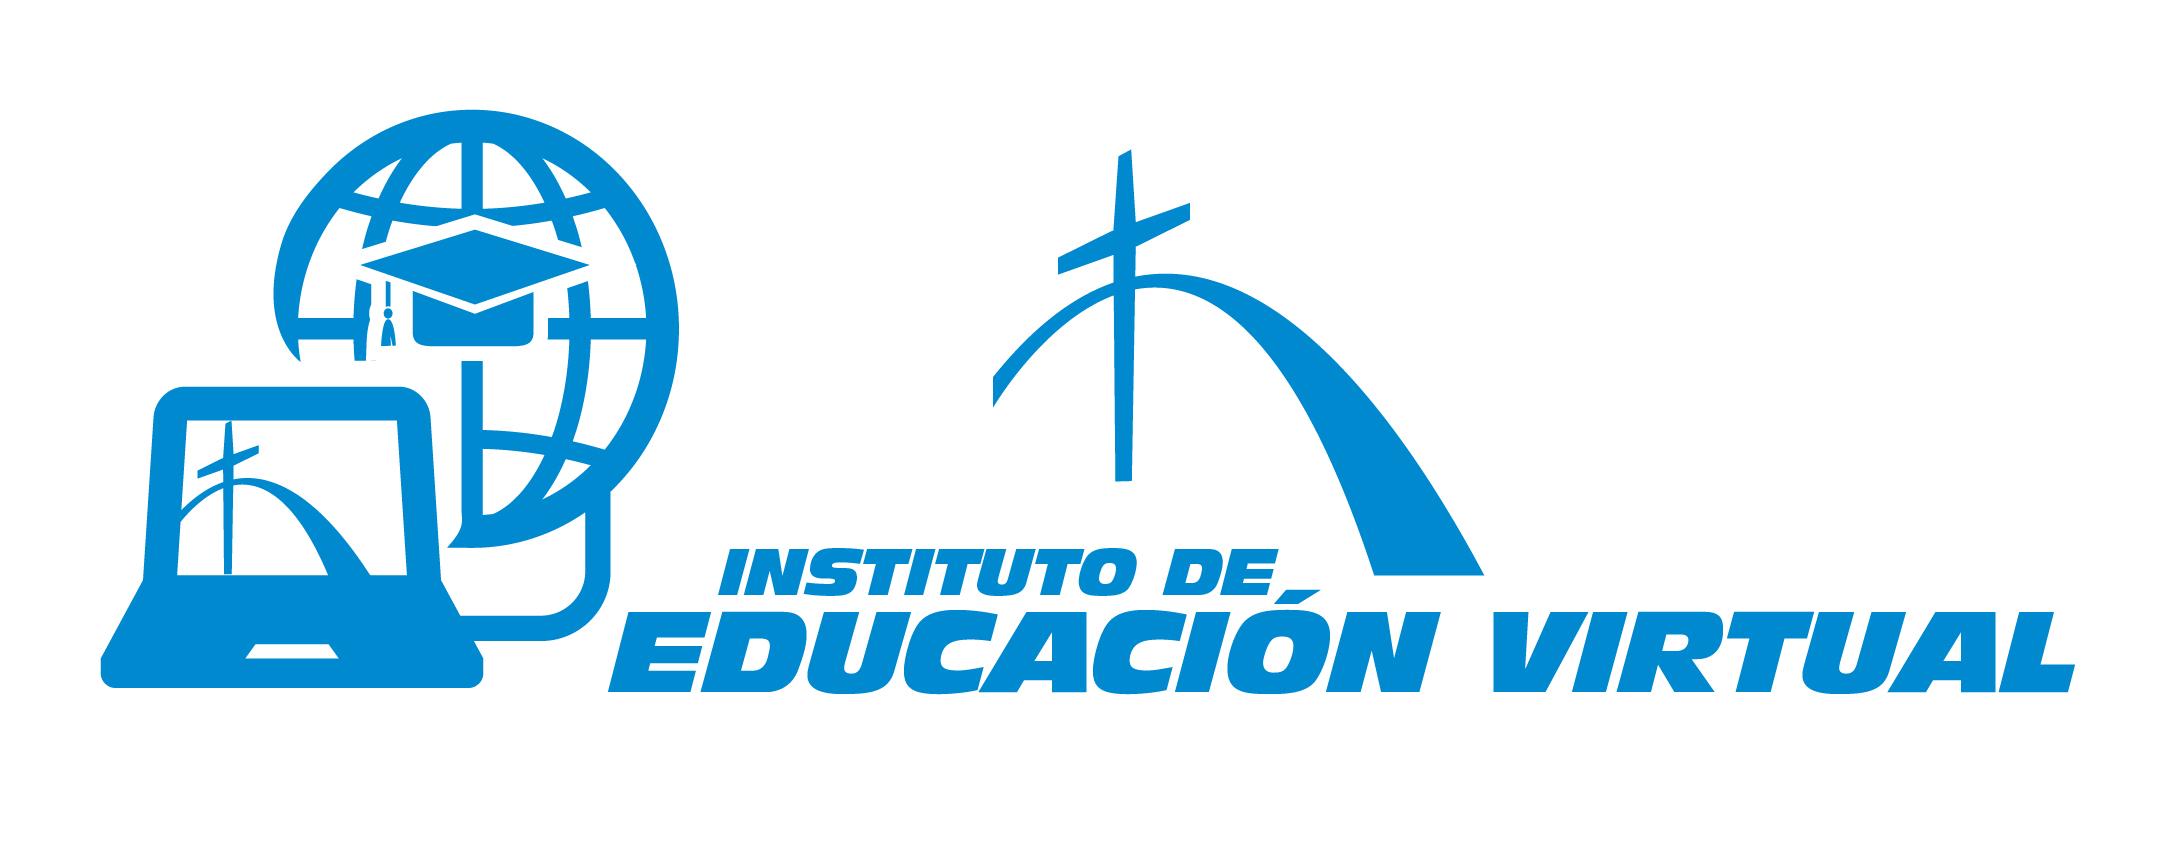 Educacion Virtual logo-01